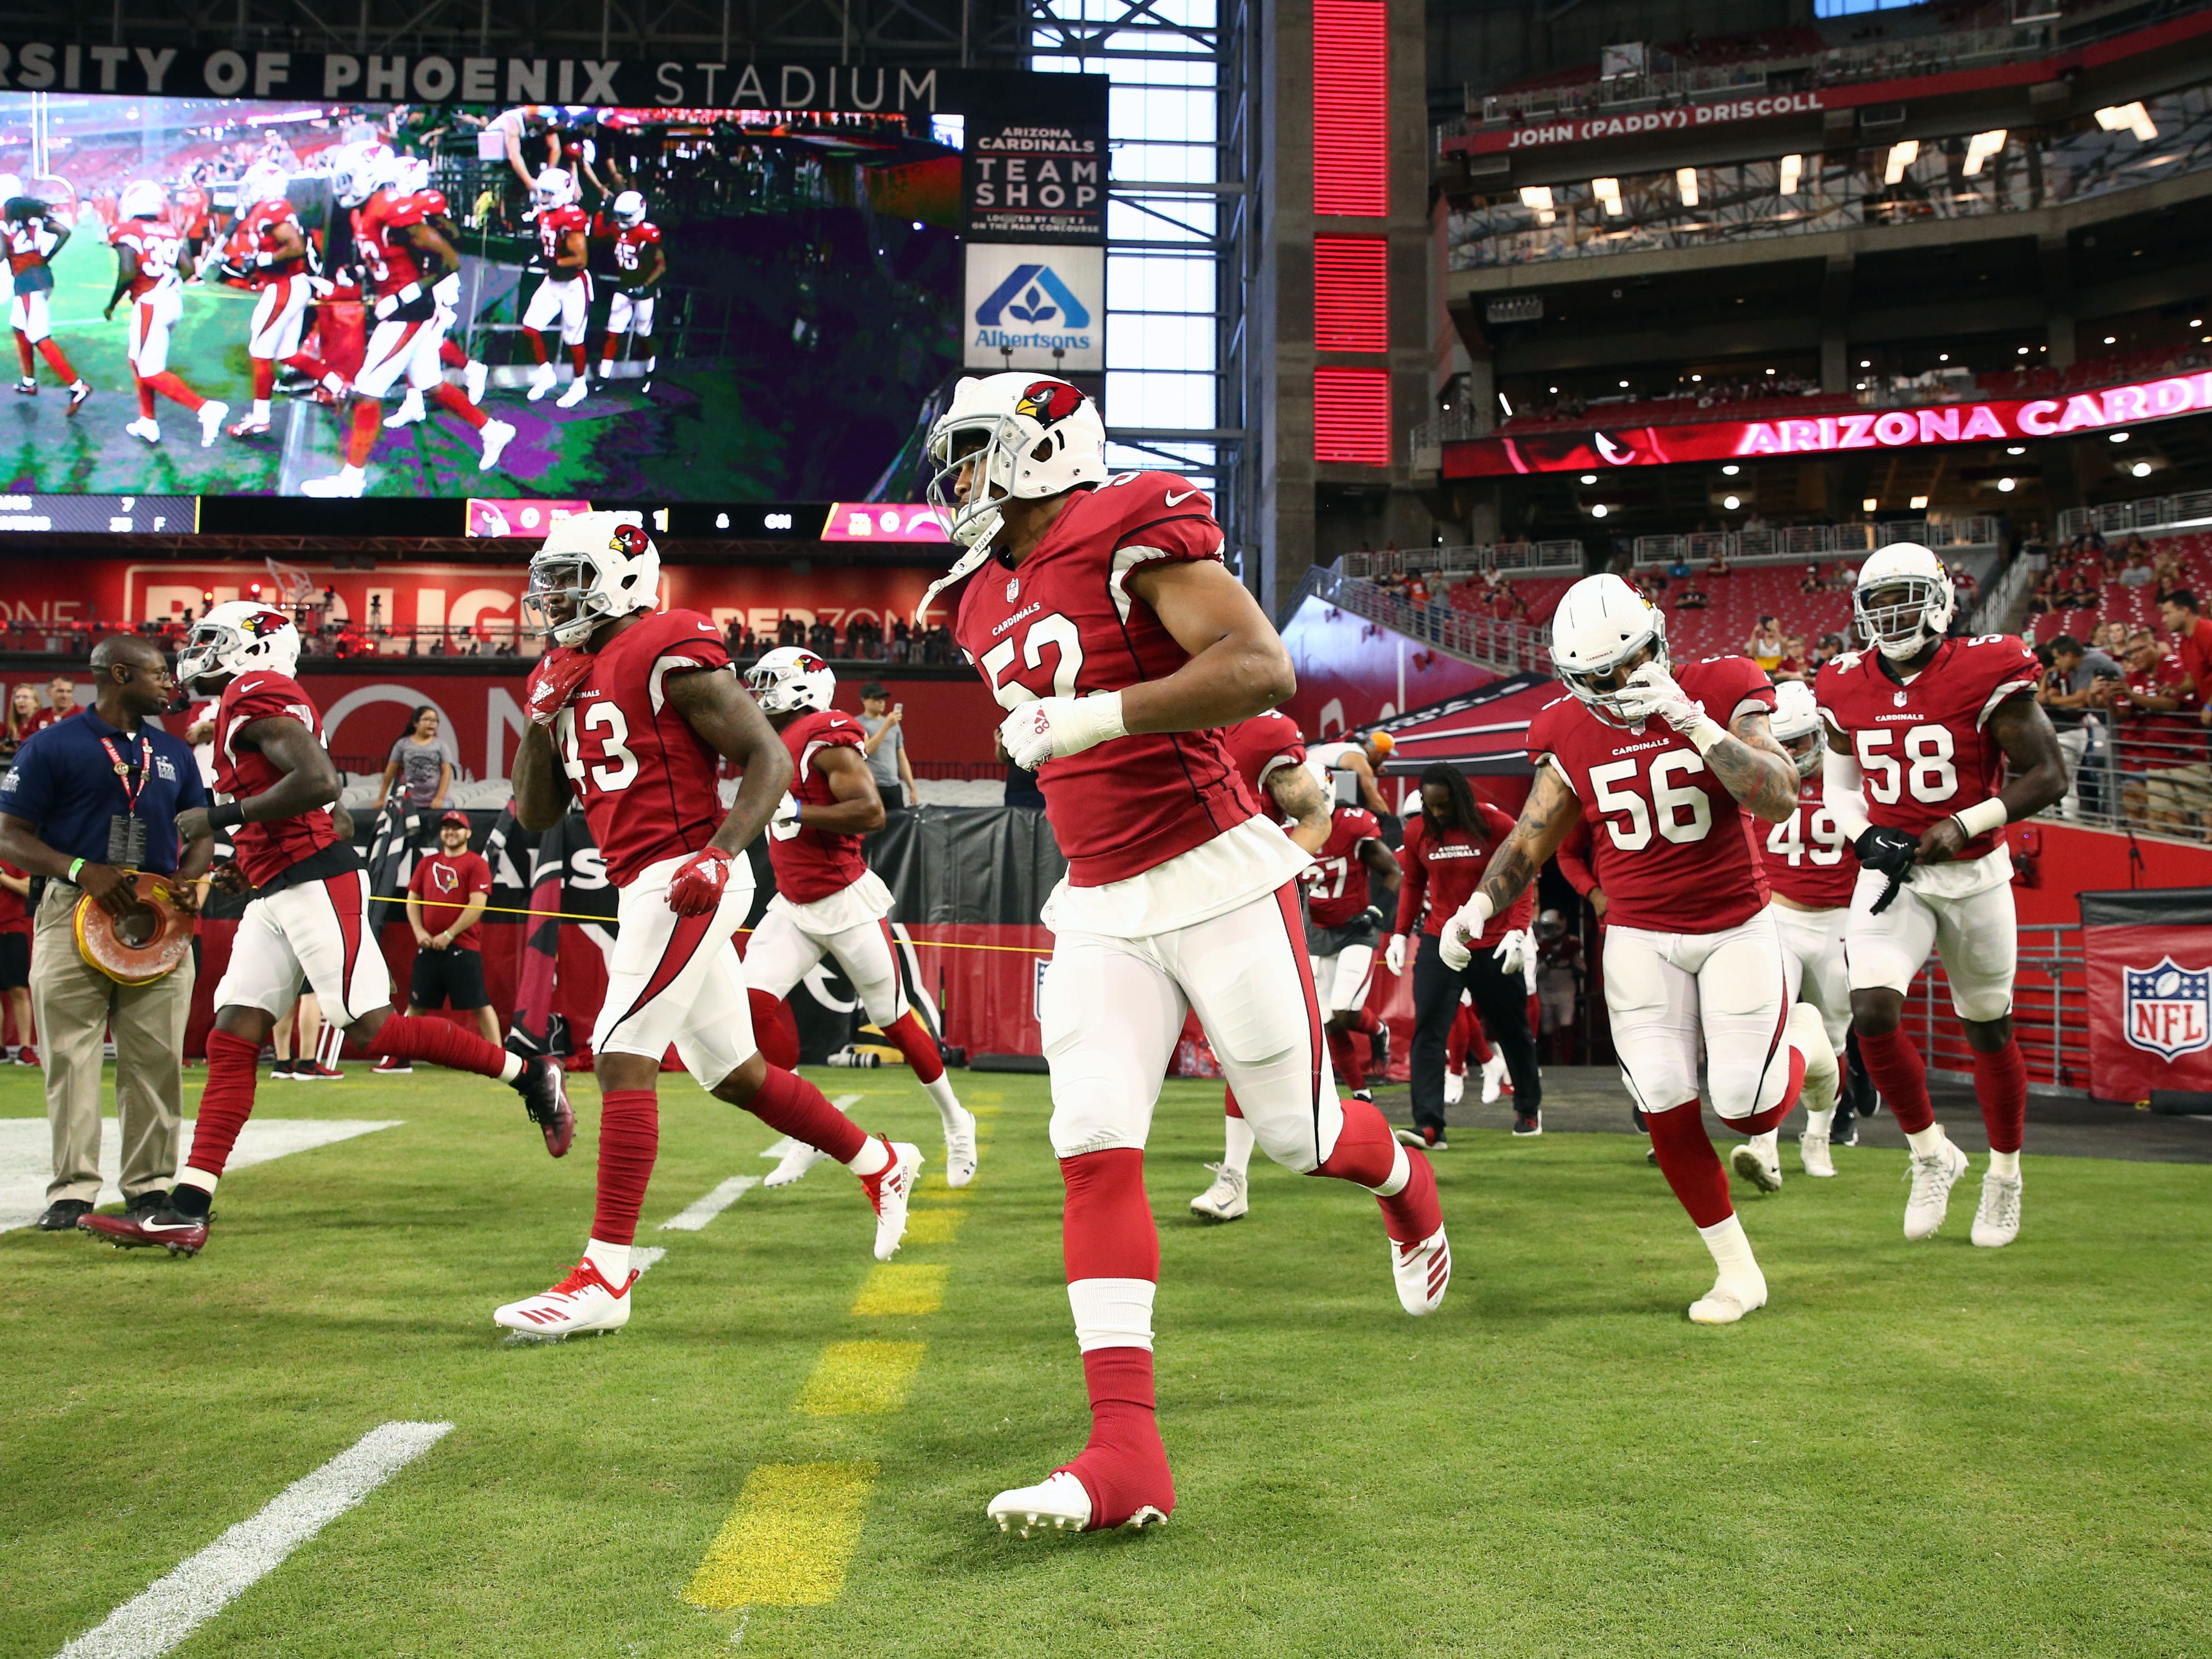 Arizona Cardinals arrive for pregame warms-up before playing the L.A. Chargers during a preseason NFL football game on Aug. 11, 2018 at University of Phoenix Stadium in Glendale, Ariz.